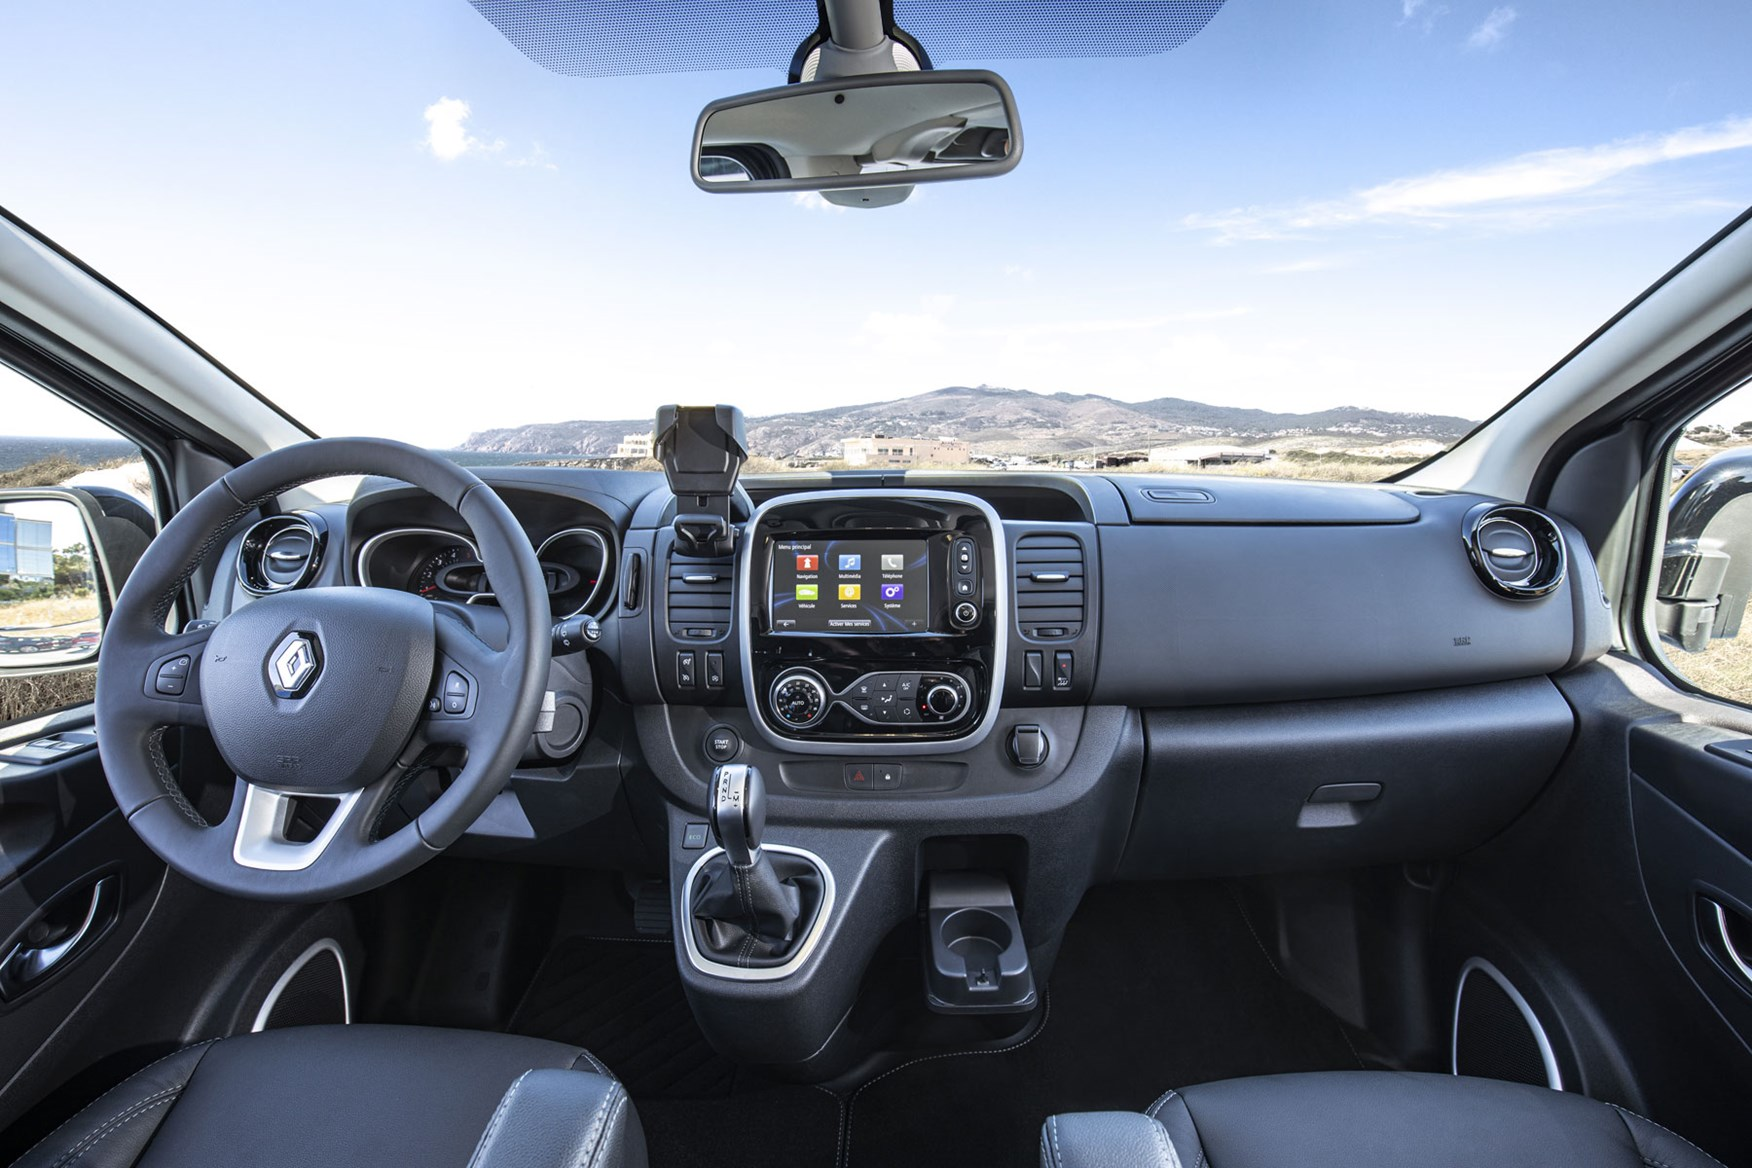 Renault Trafic review - 2019 facelift, cab interior showing whole dashboard, steering wheel, infotainment